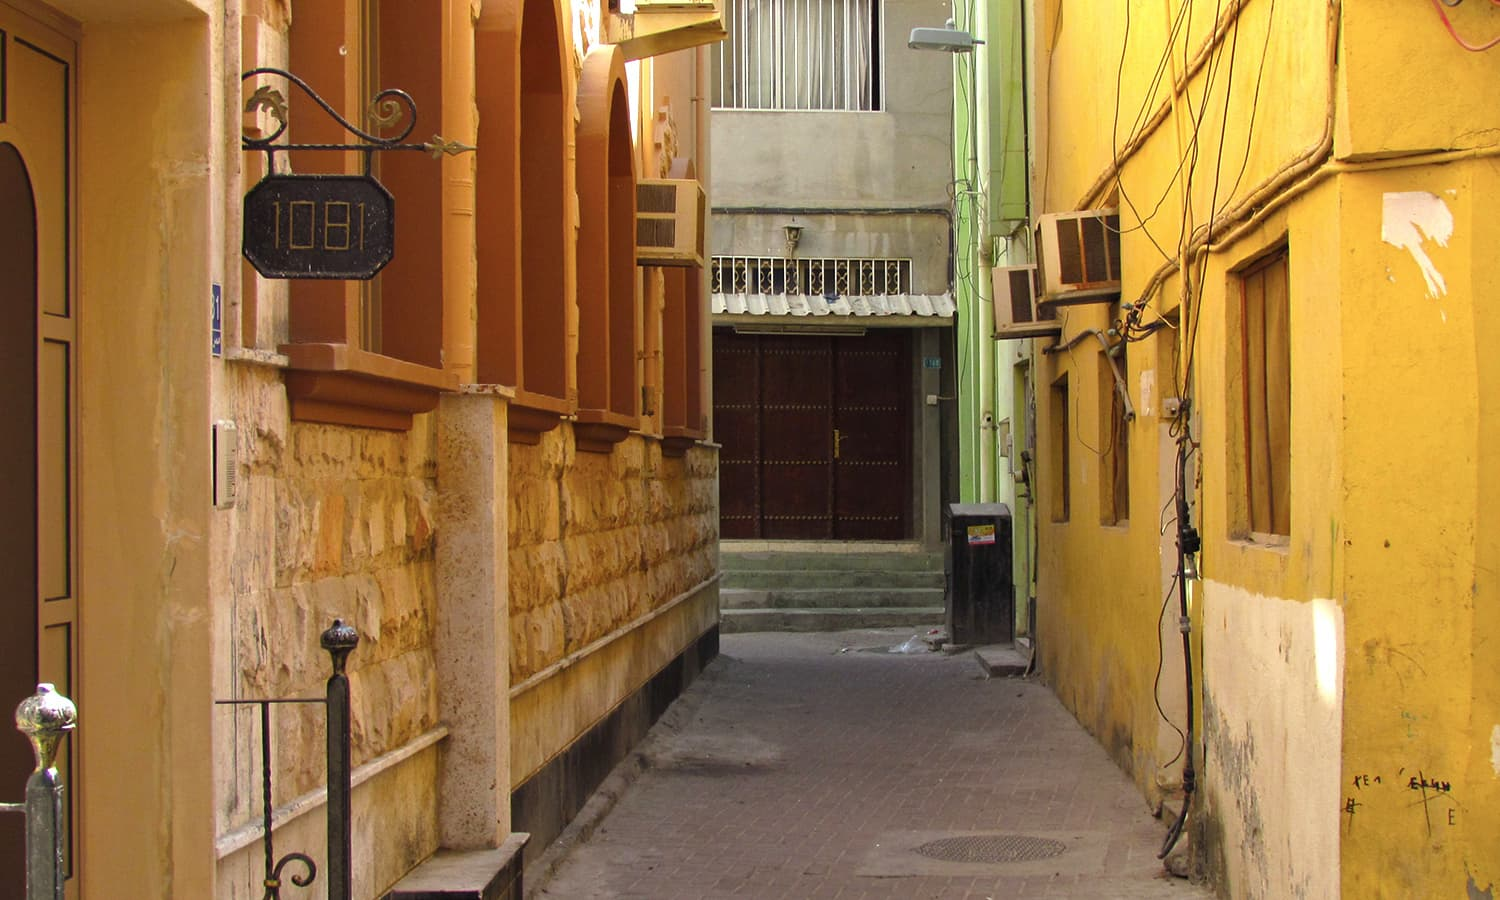 One of the many alleyways in Muharraq.